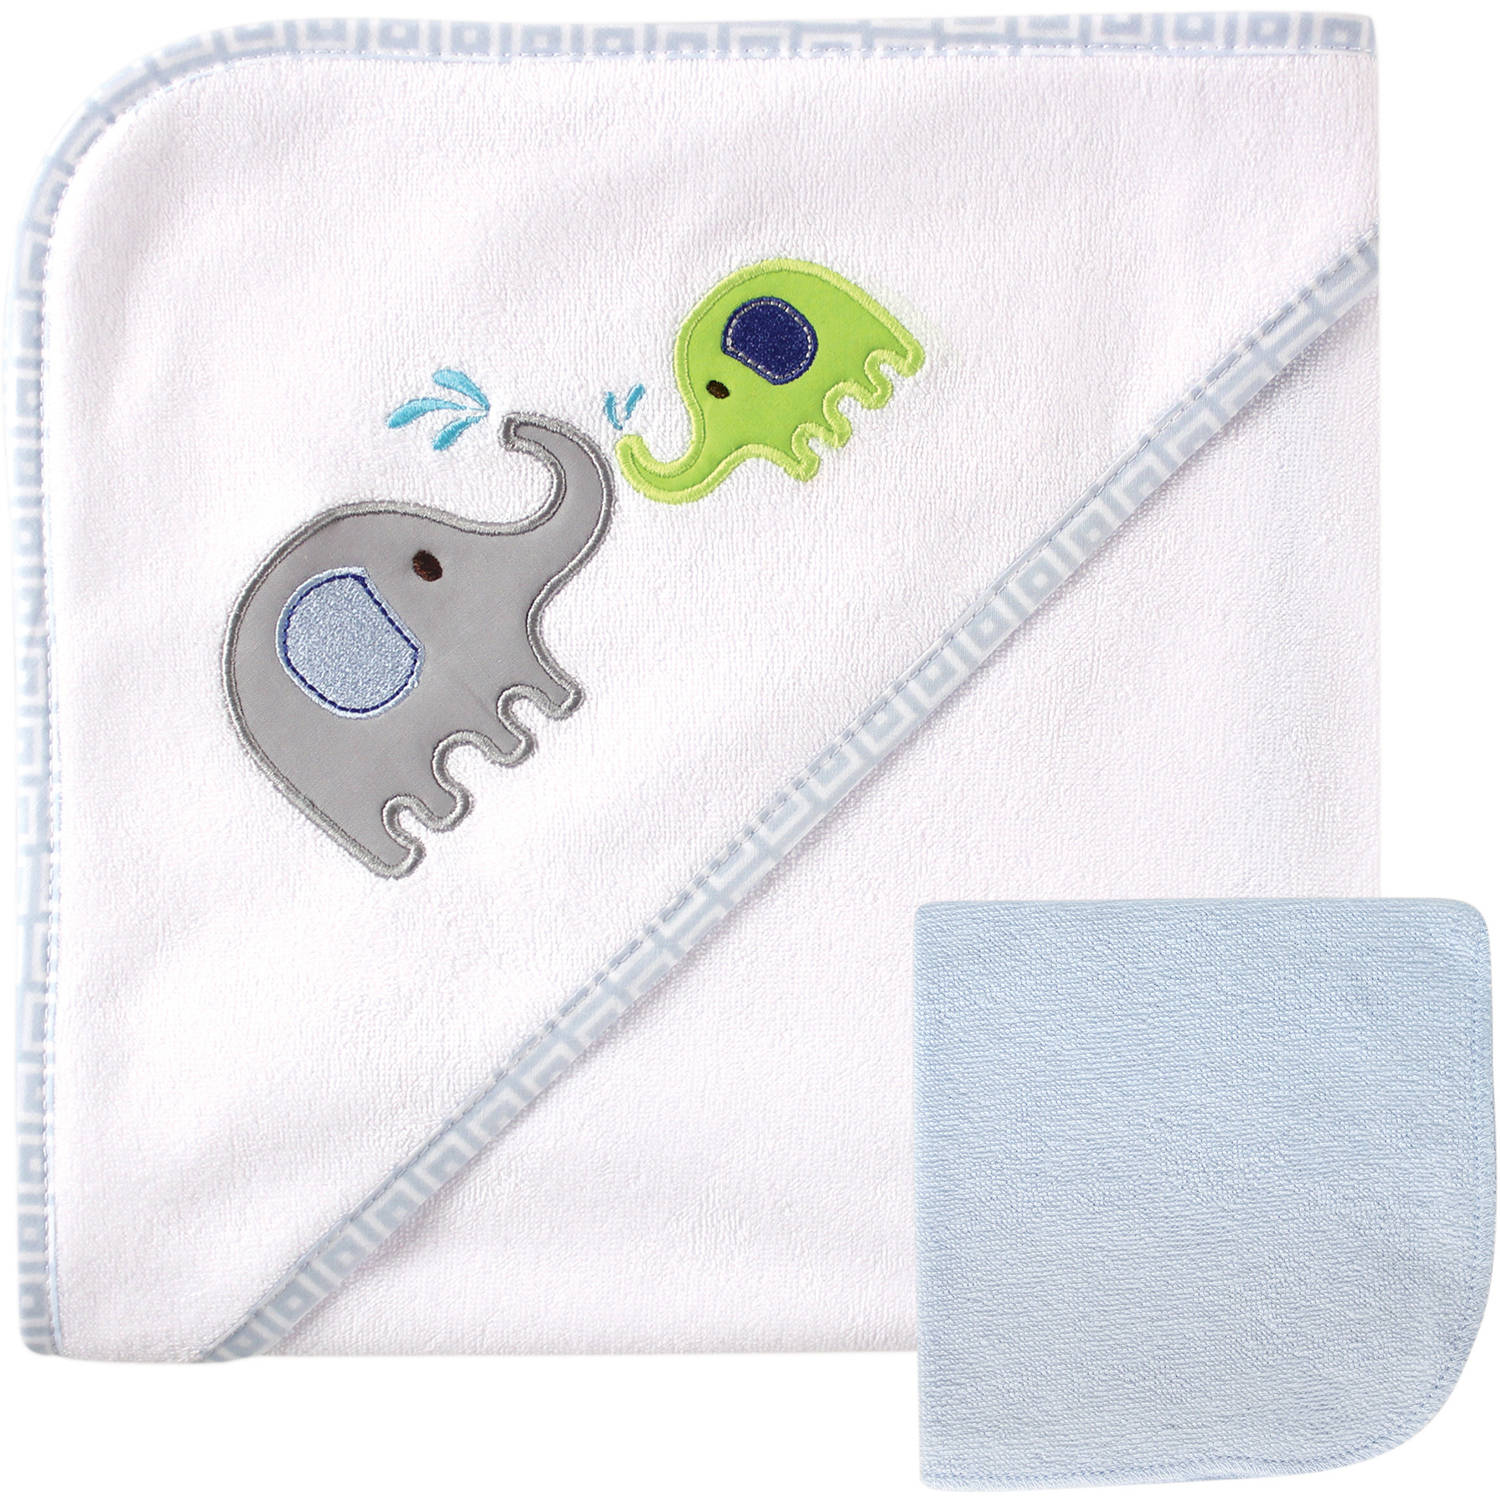 Luvable Friends Hooded Towel with Washcloth, Choose Your Color